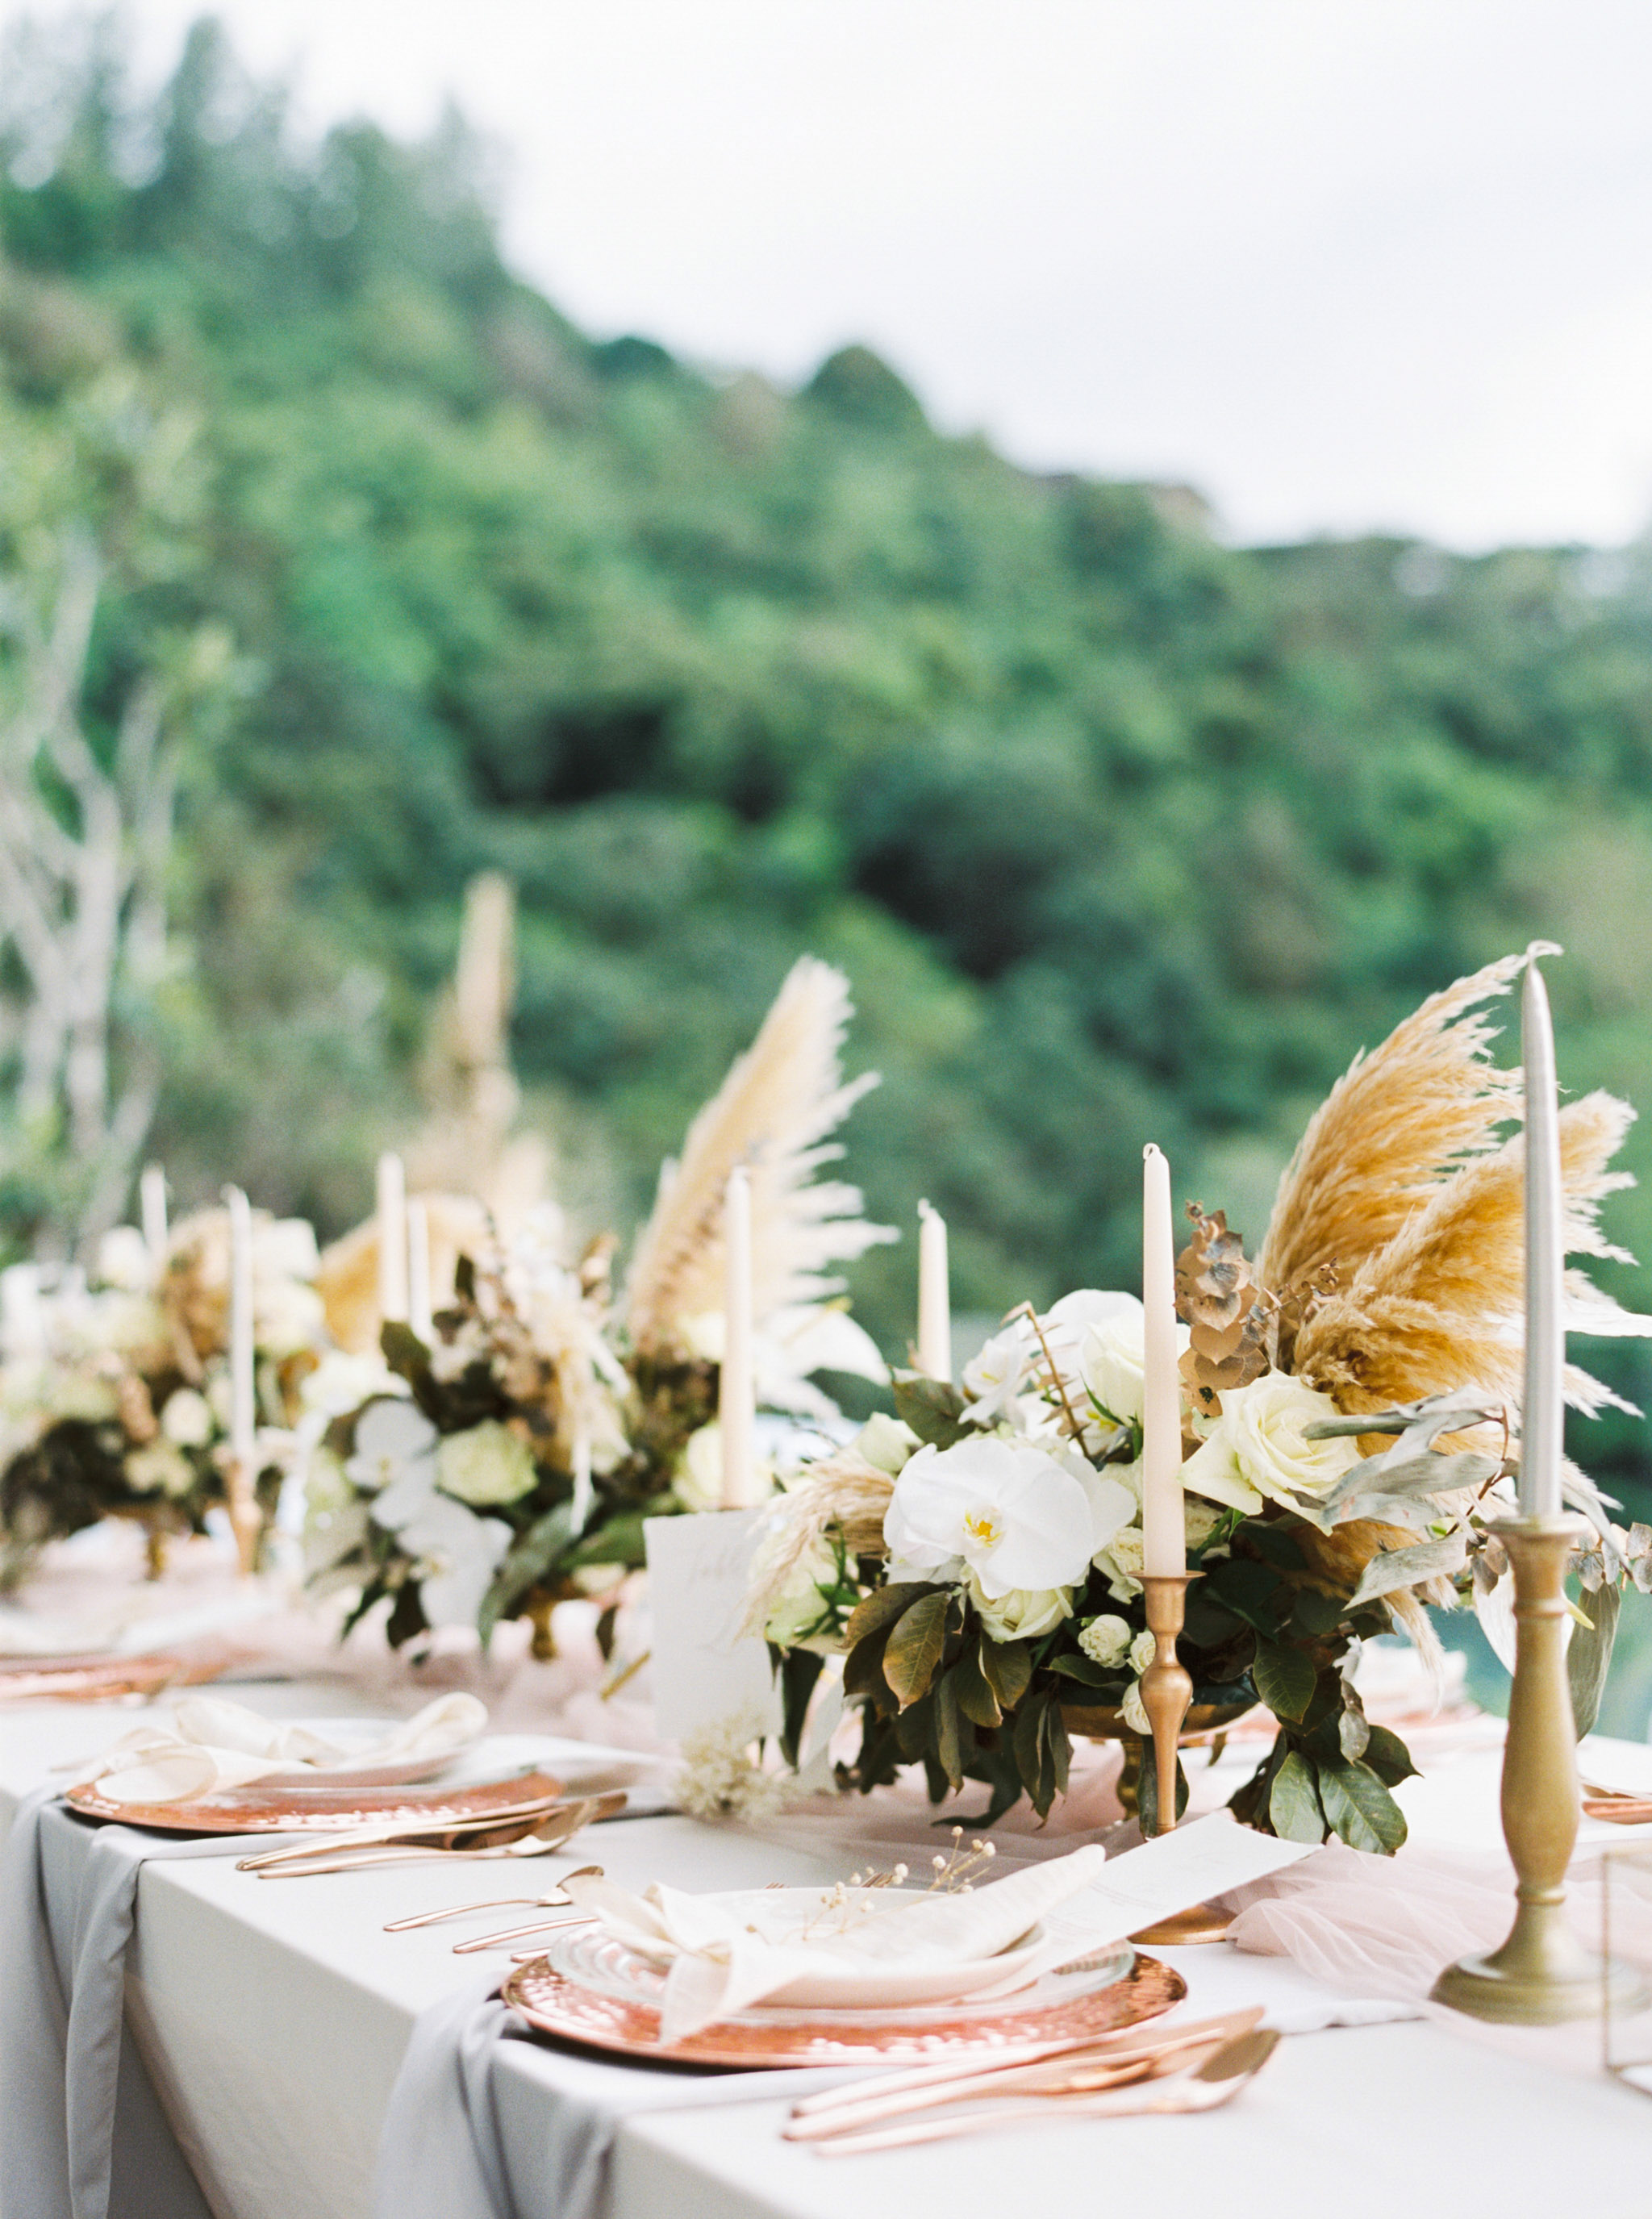 Destination Wedding at The Aquila Luxury Villas in Phuket Thailand Fine Art Film Wedding Photographer Sheri McMahon-00056-56.jpg